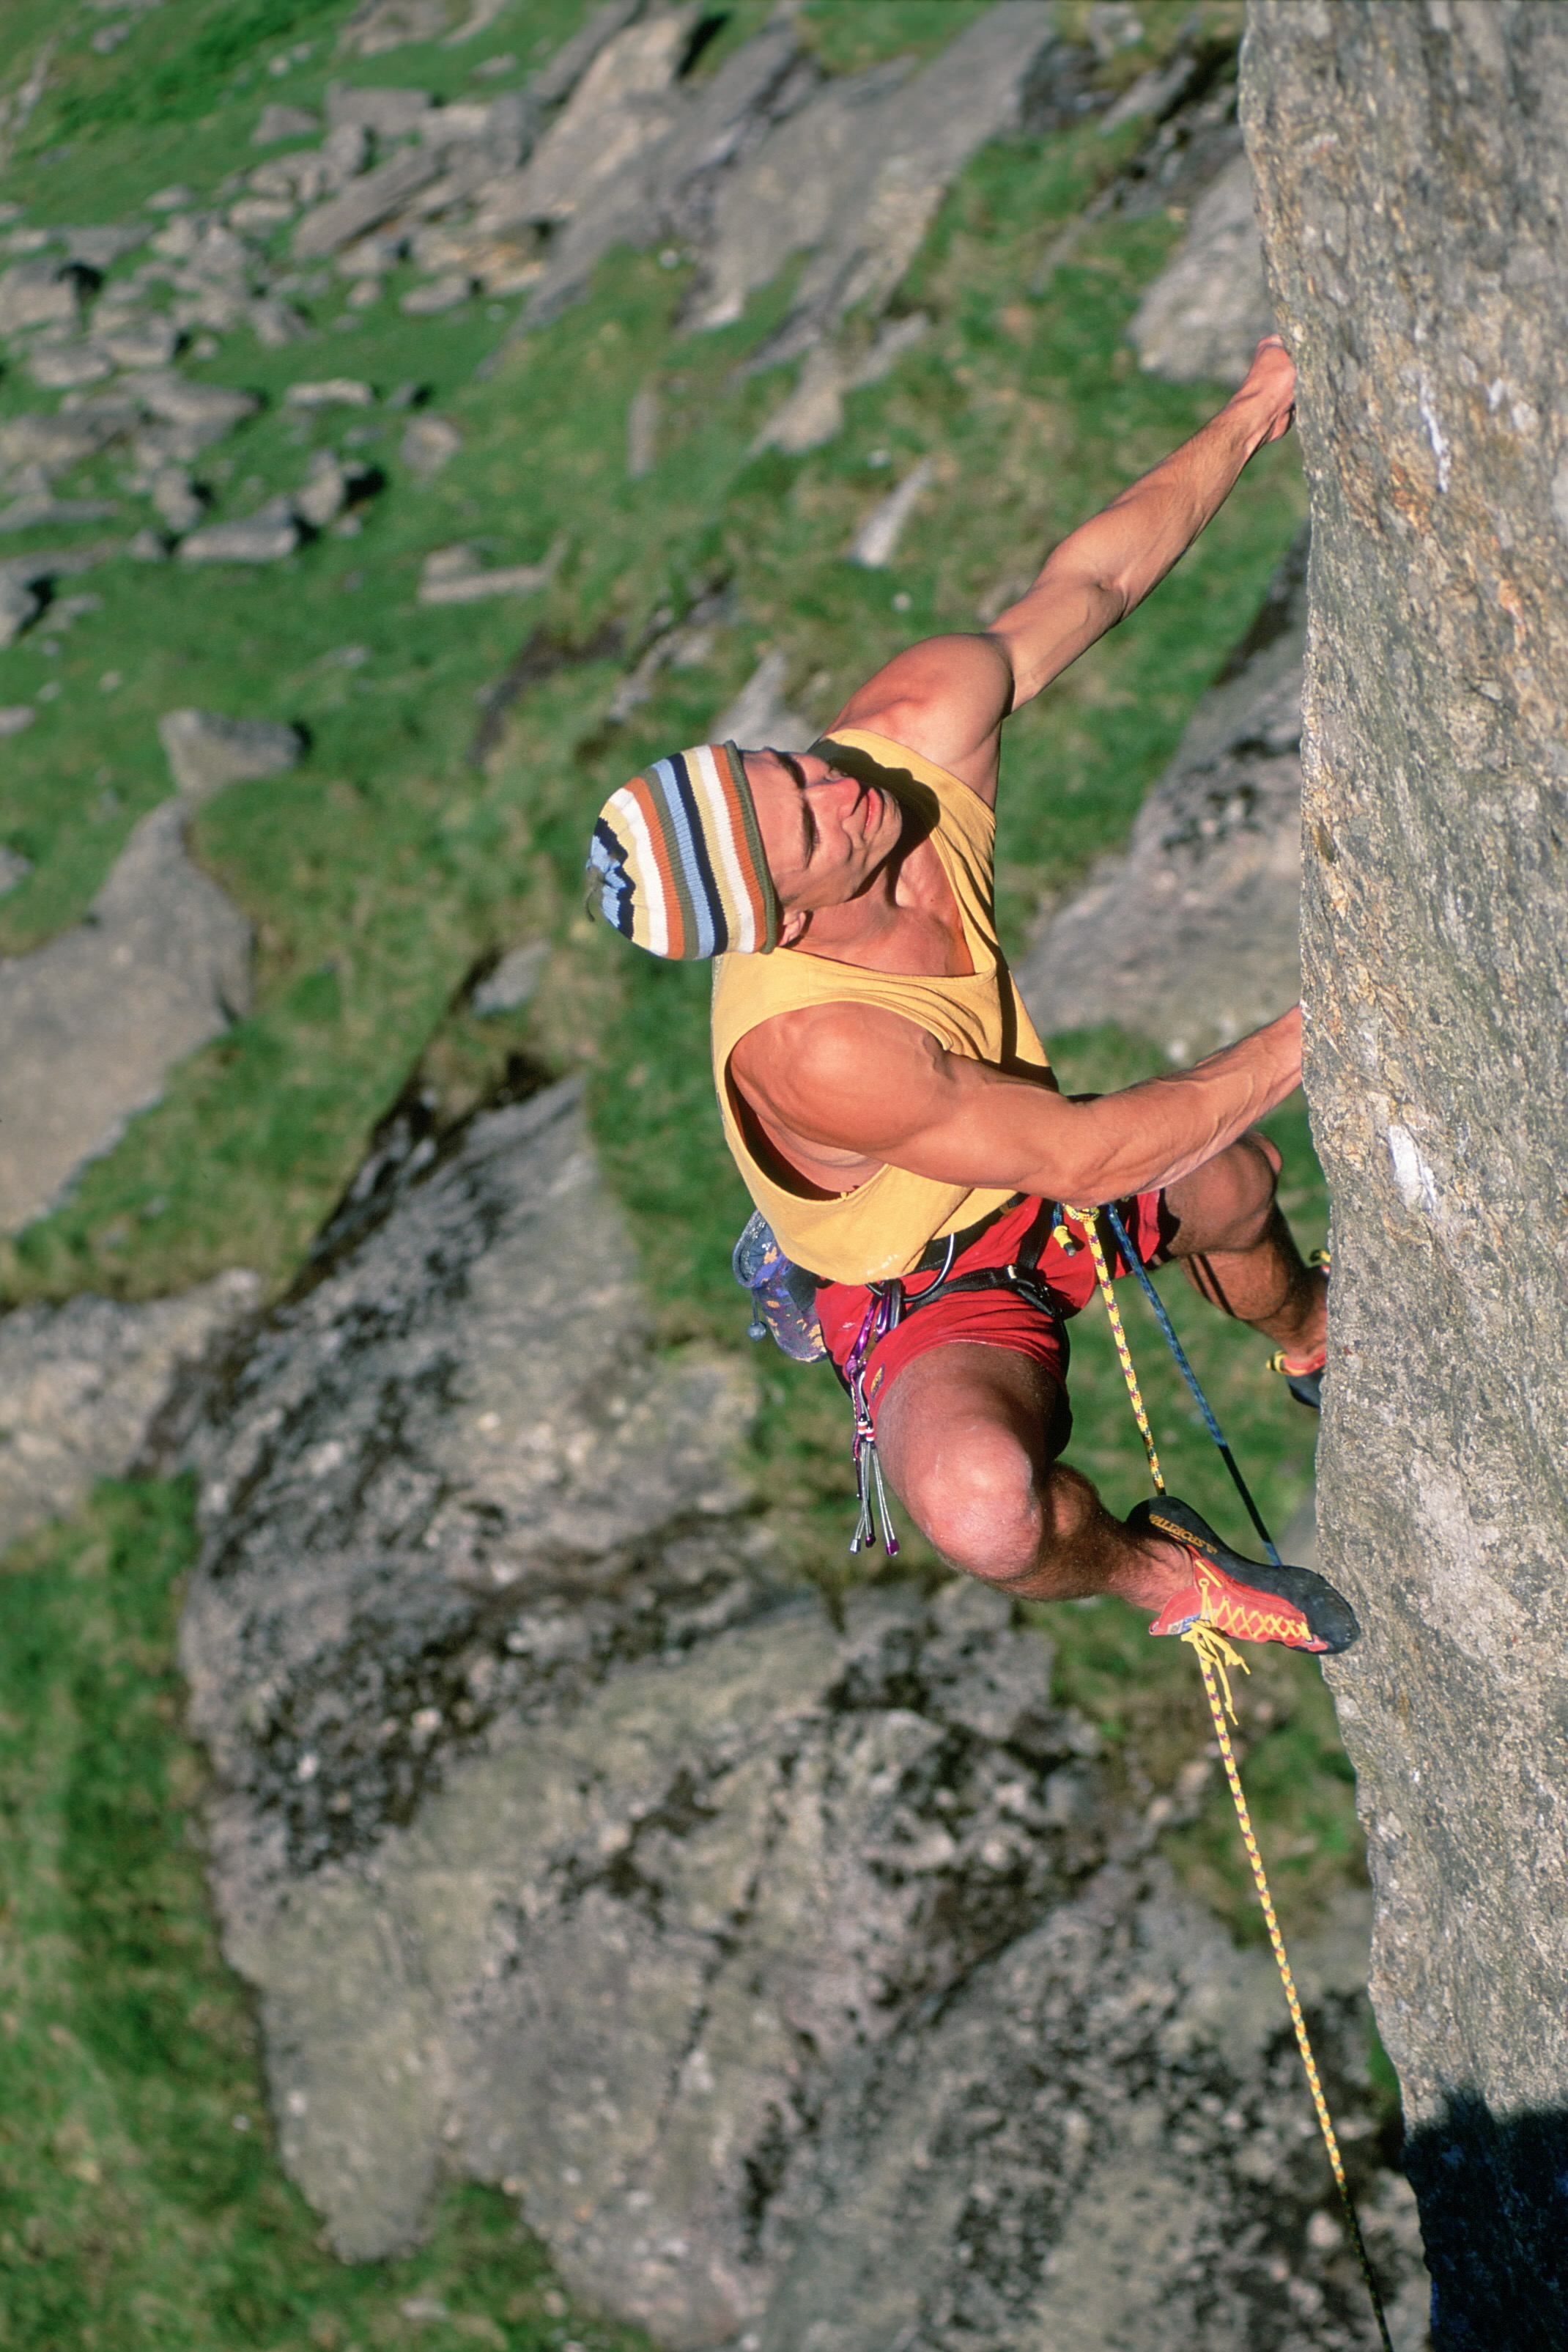 Testing the legendary Mirage, the world's first down-turned shoe on the first ascent of Gravediggers E8 6c, Llanberis, UK in 1997. Photo: Ray Wood